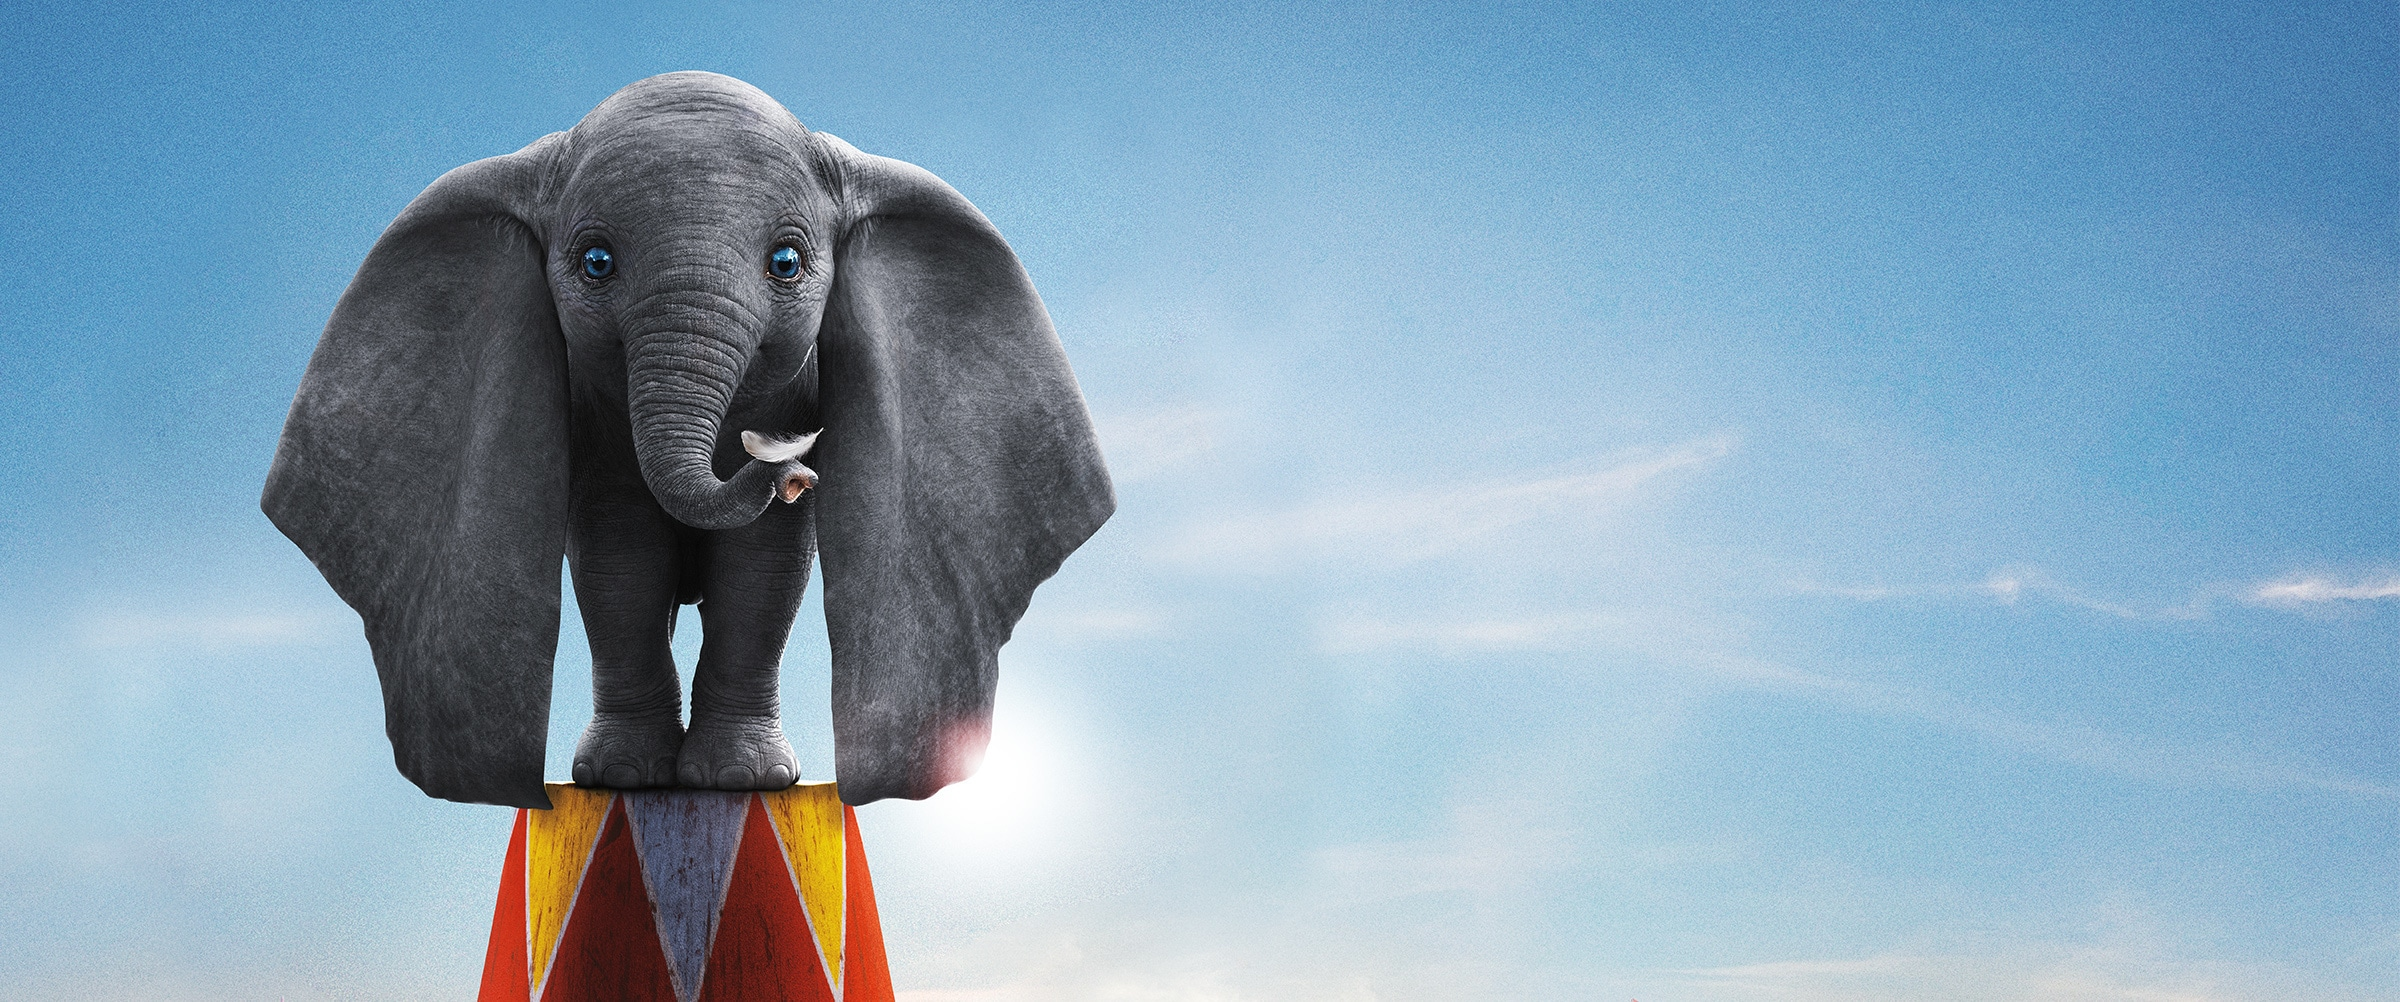 Dumbo | Trailer | Intl Payoff Hero